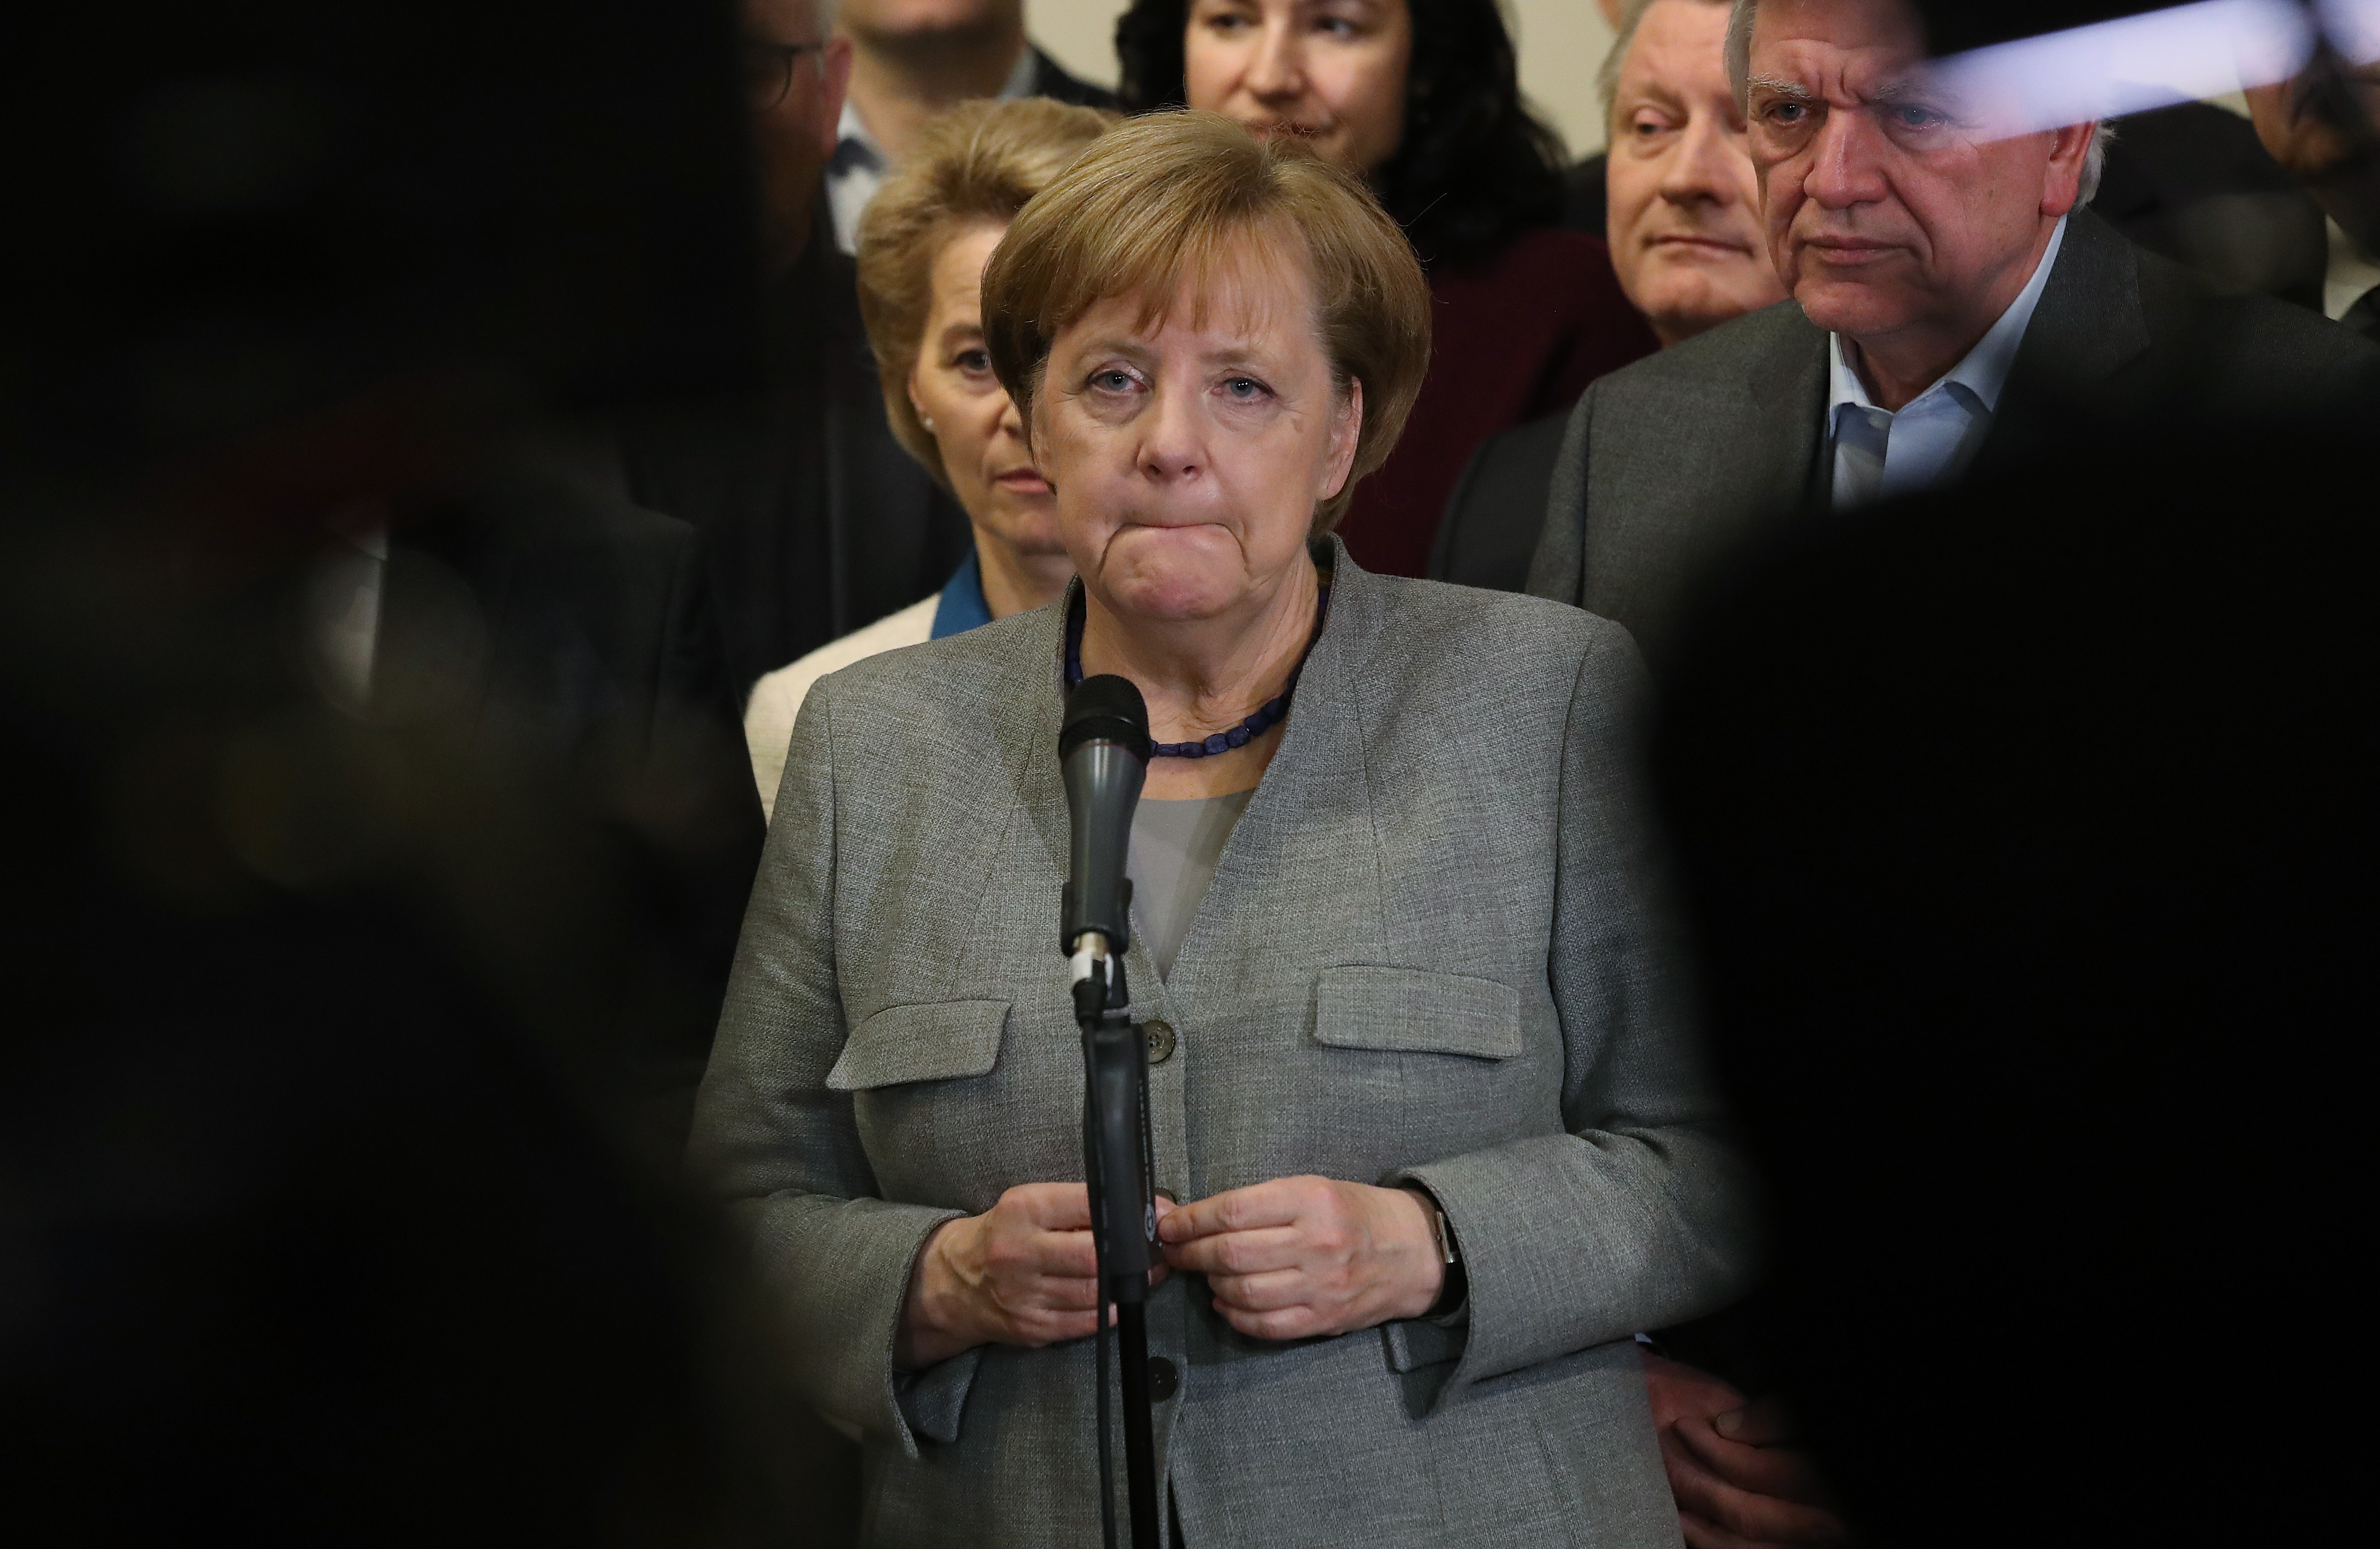 German Chancellor and leader of the German Christian Democrats (CDU) Angela Merkel, standing with leading members of her party, speaks to the media in the early hours after preliminary coalition talks collapsed following                      the withdrawal of the Free Democratic Party (FDP)                      on November 20, 2017 in Berlin, Germany.